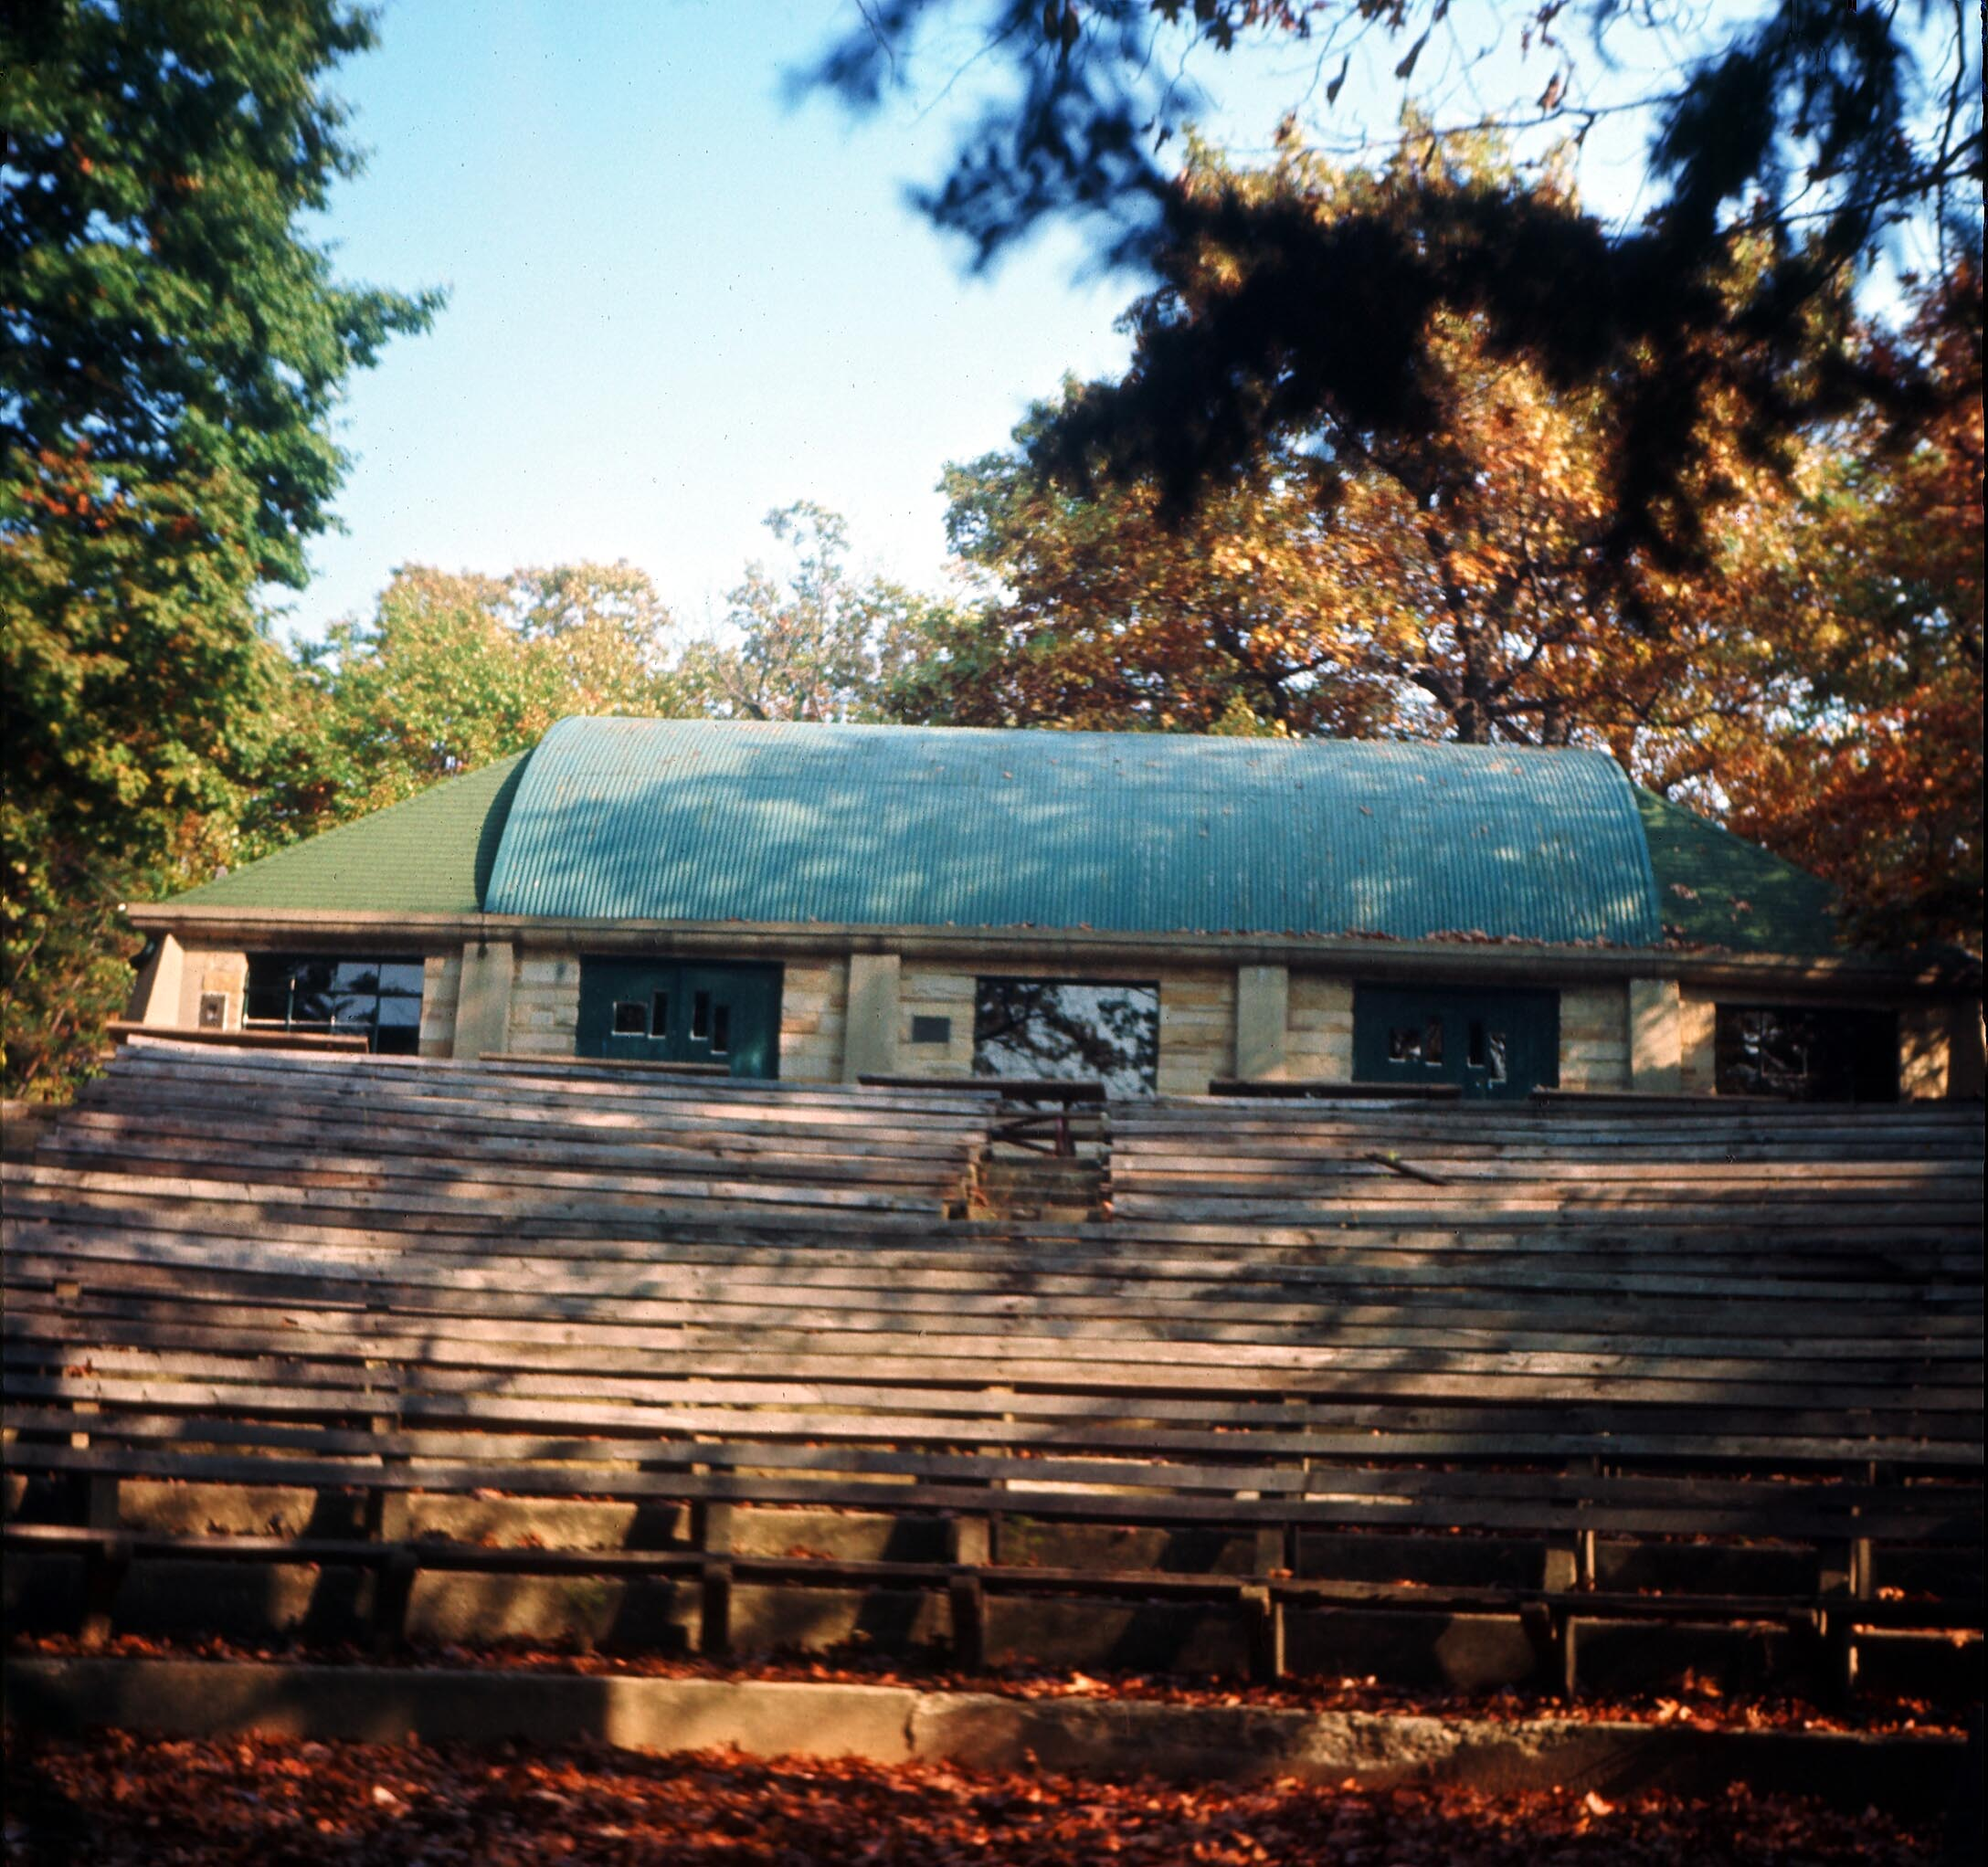 Hoover Lodge amphitheater in 1967